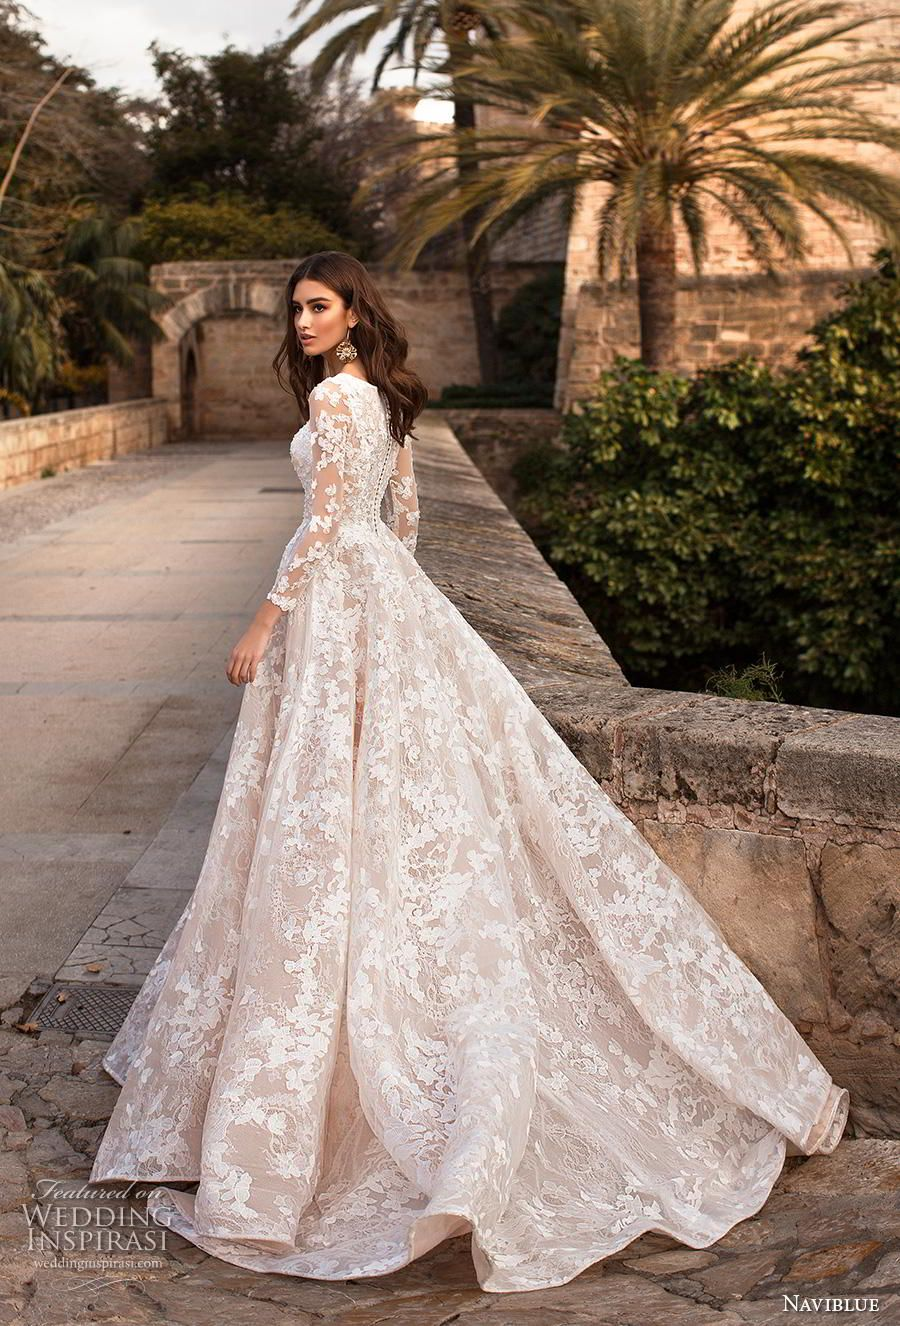 naviblue 2019 bridal long sleeves bateau neck full embellishment elegant  modest a line wedding dress covered lace back chapel train (15) bv --  Naviblue 2019 ... 4c07a11439c4